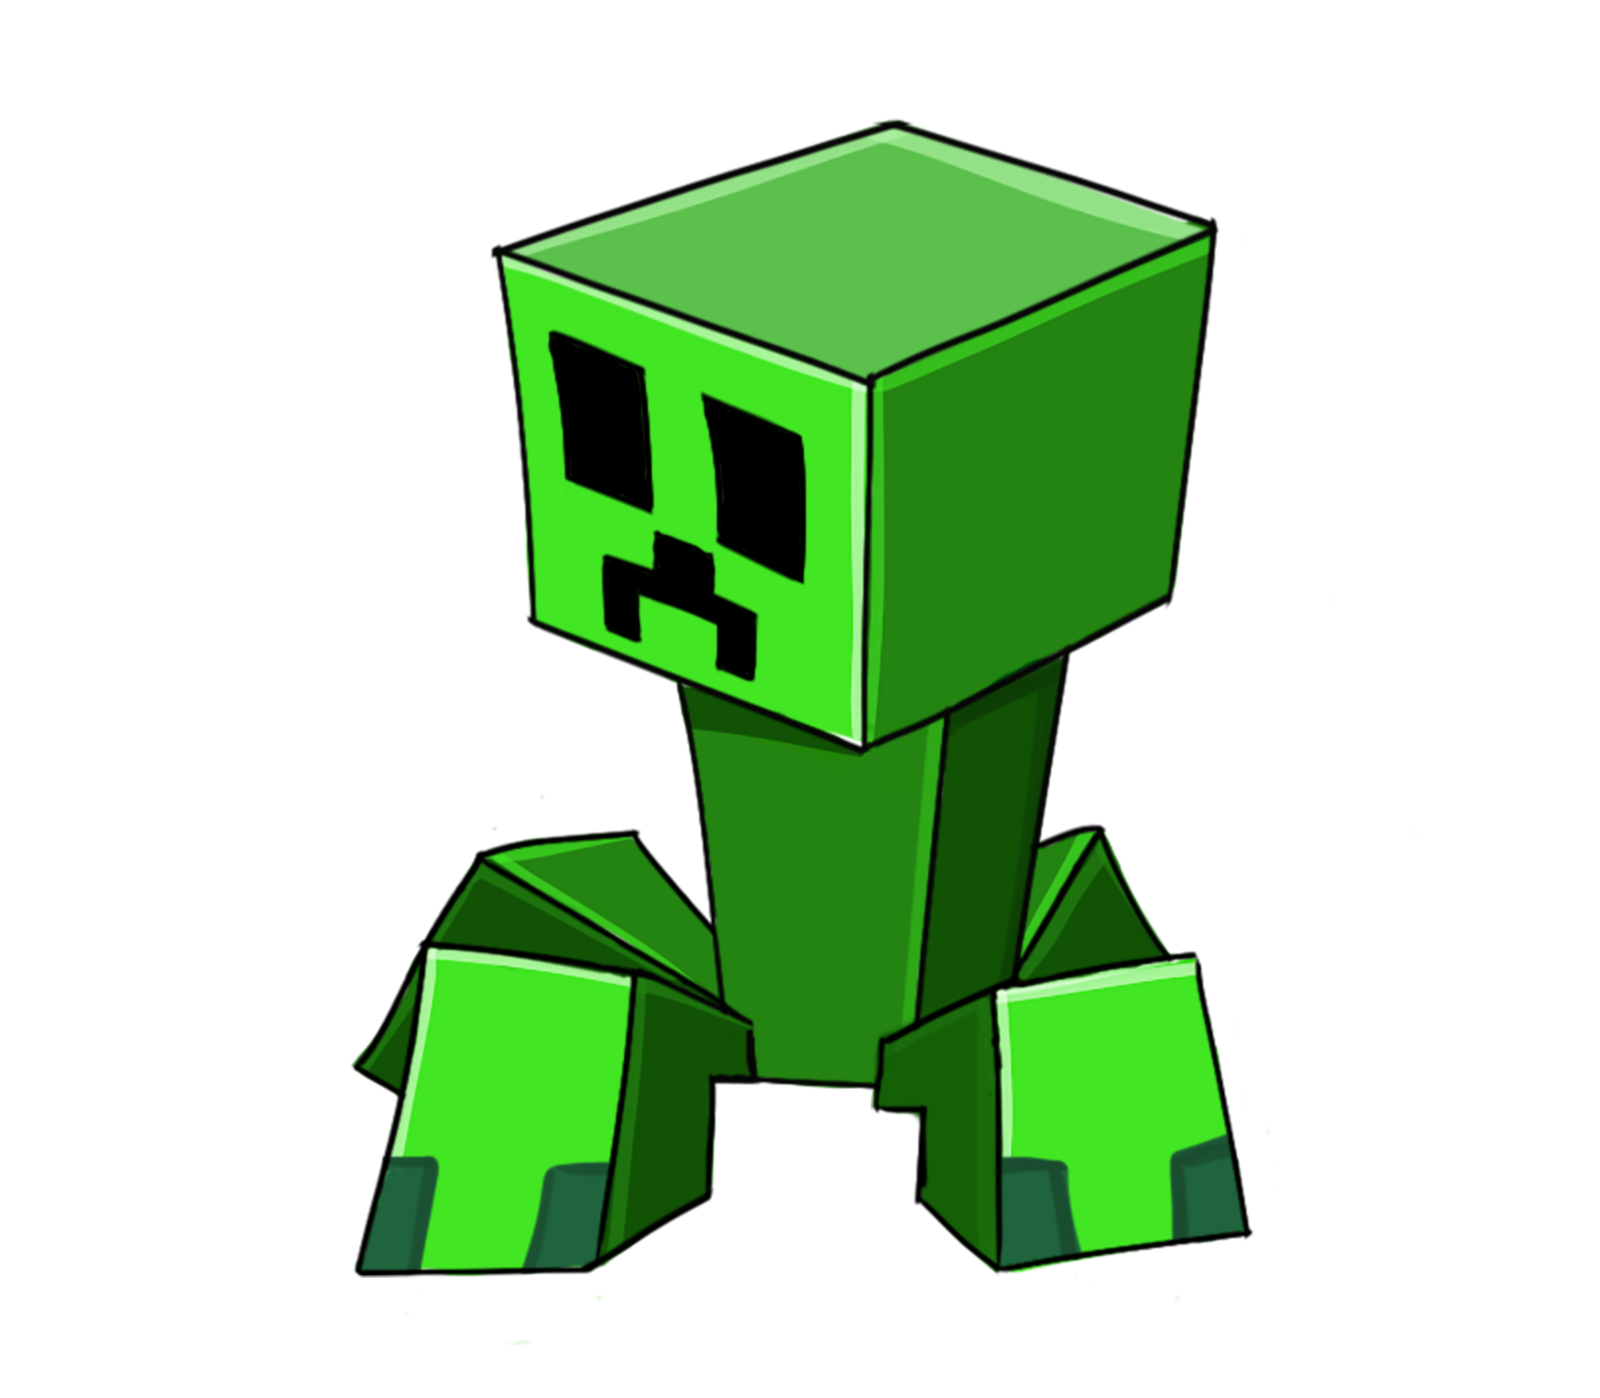 Creeper Transparent Backgroun